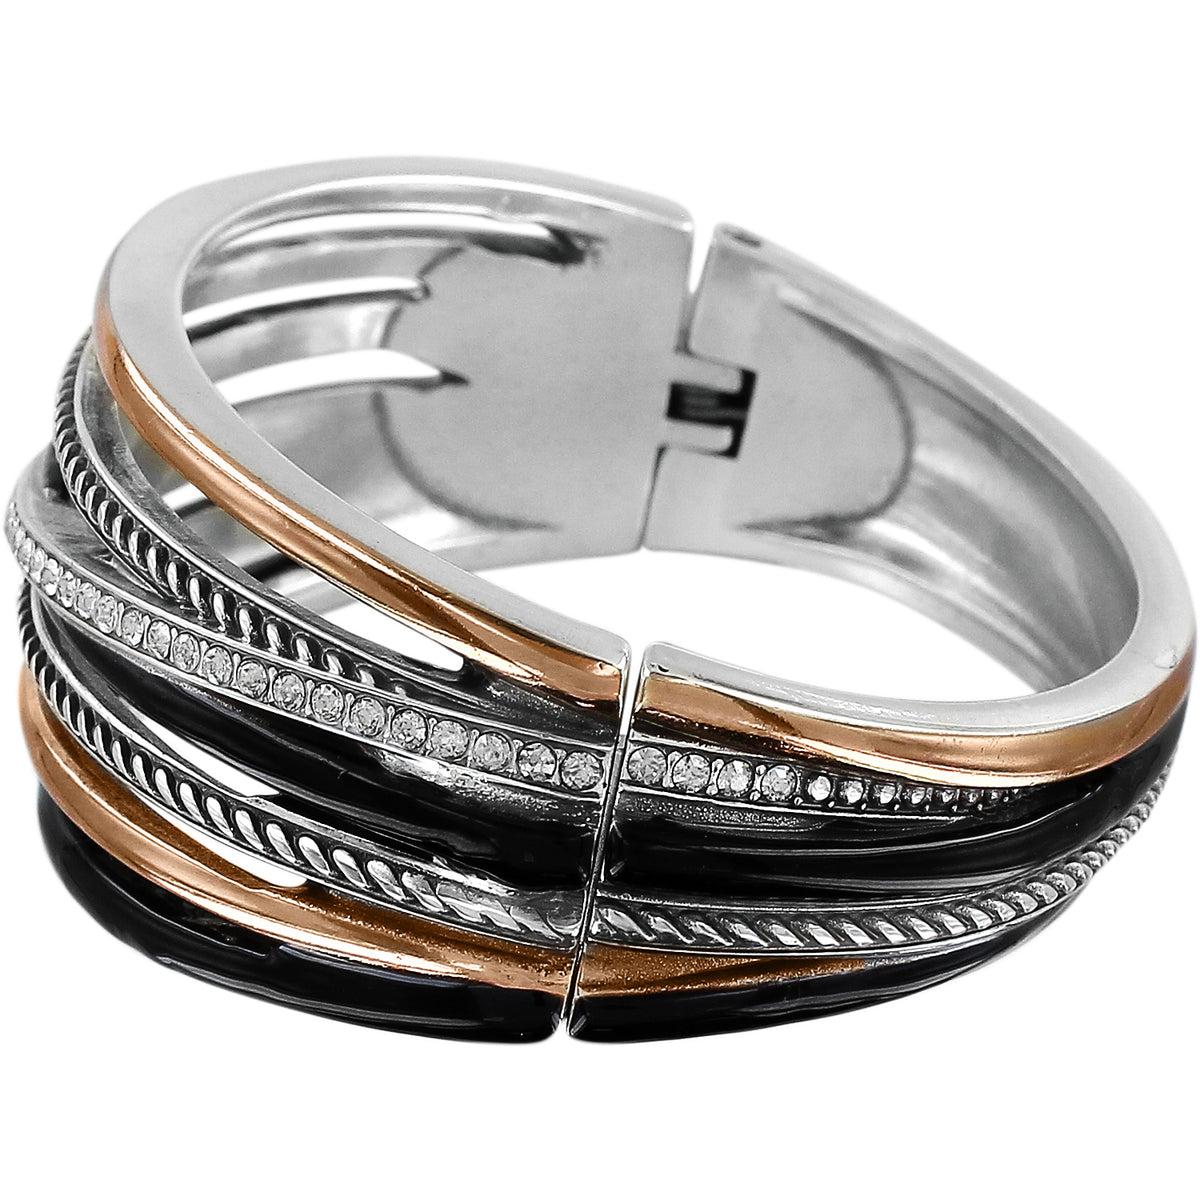 Brighton Neptune's Rings Black Hinged Bangle